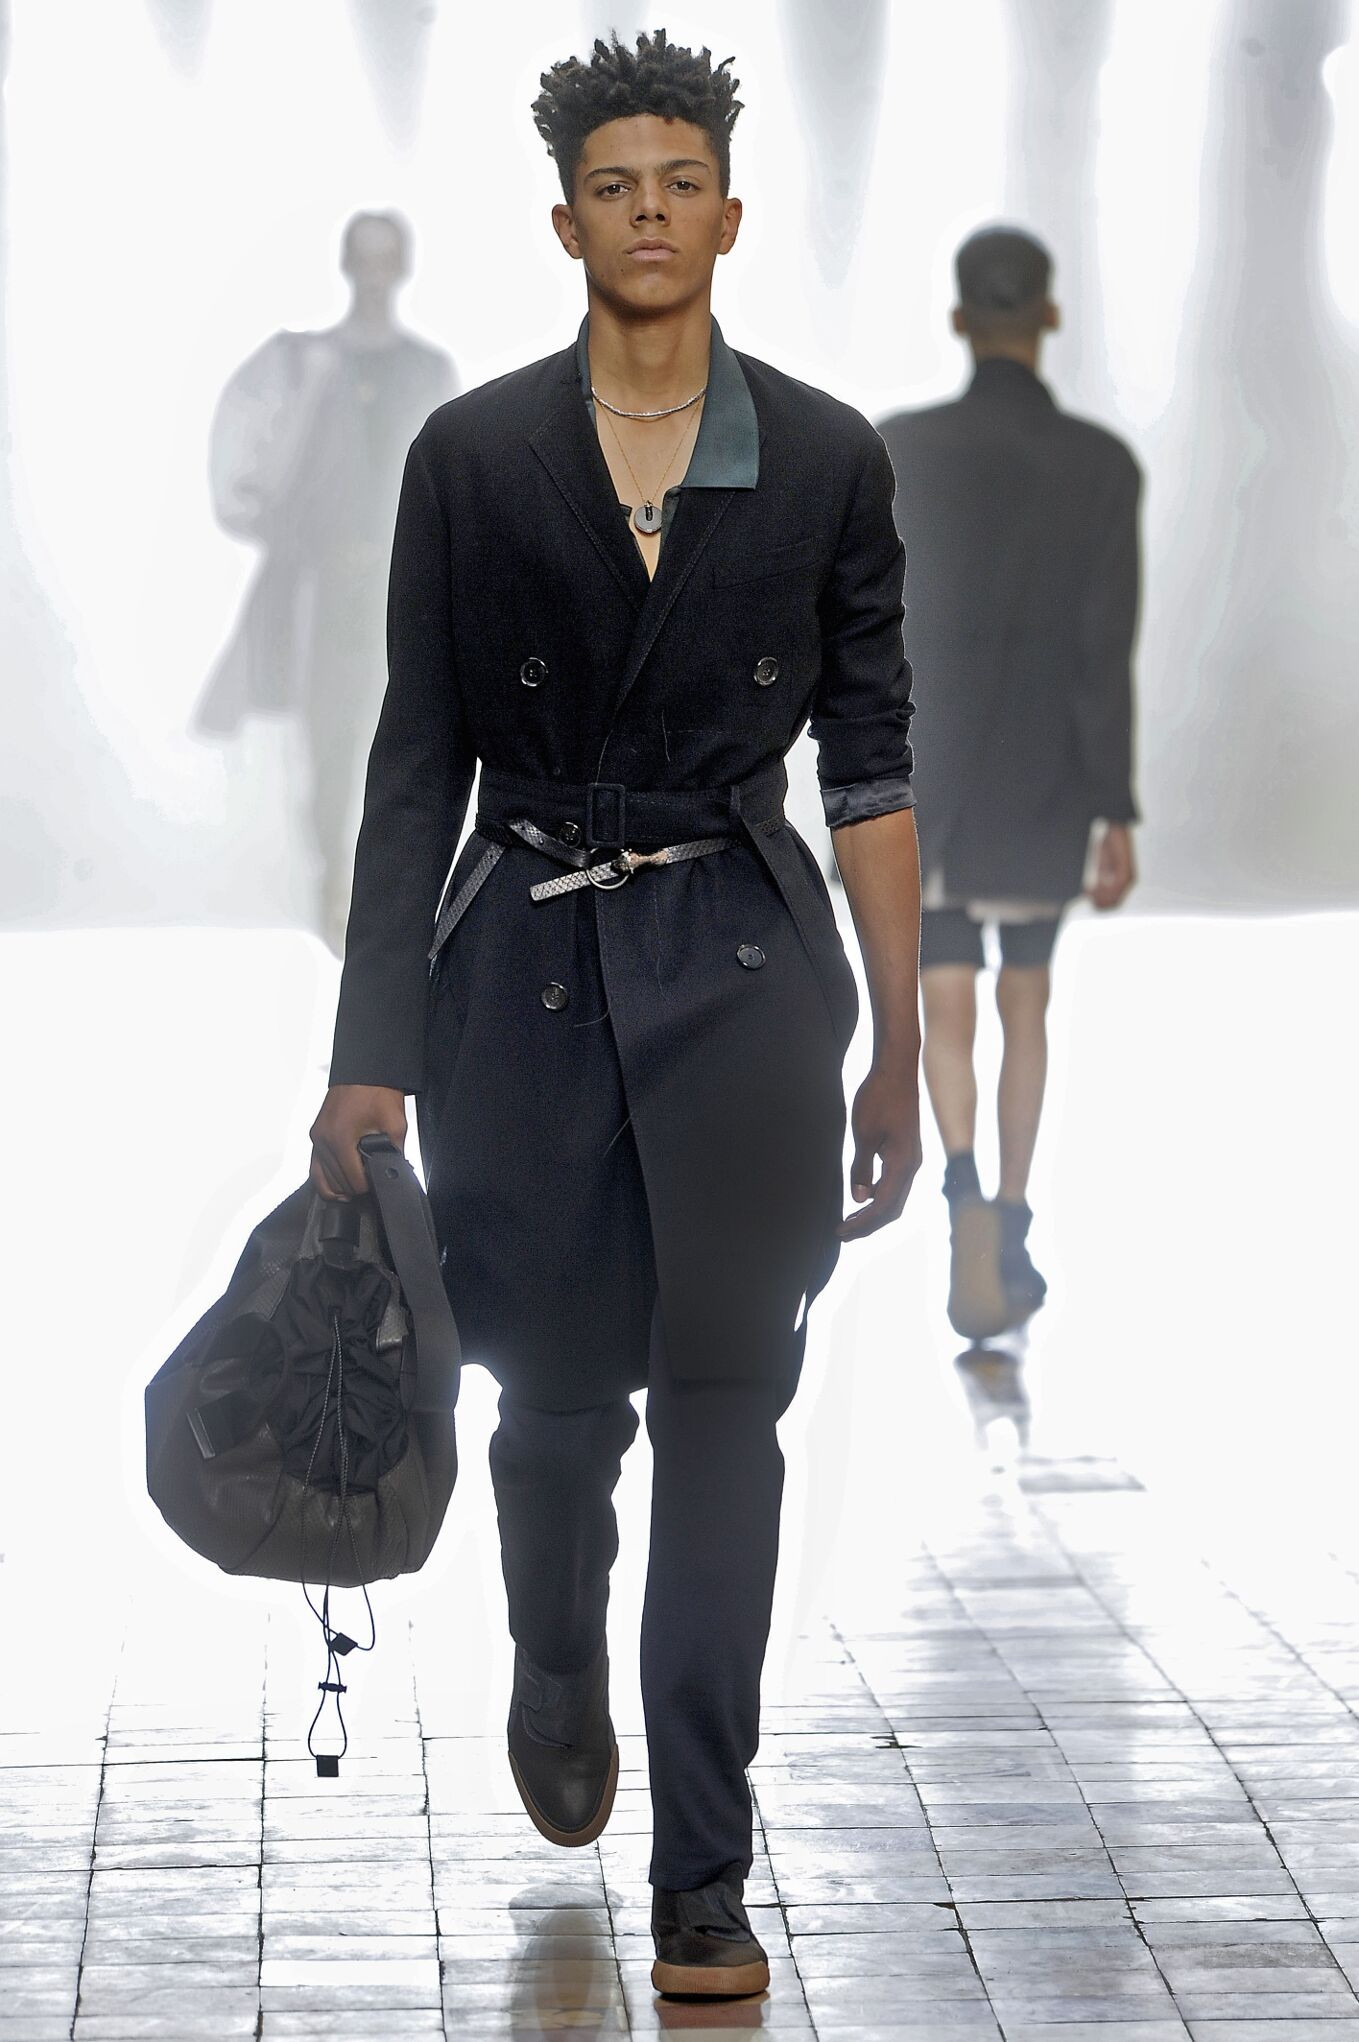 Lanvin Spring Summer 2016 Menswear Collection Paris Fashion Week Fashion Show